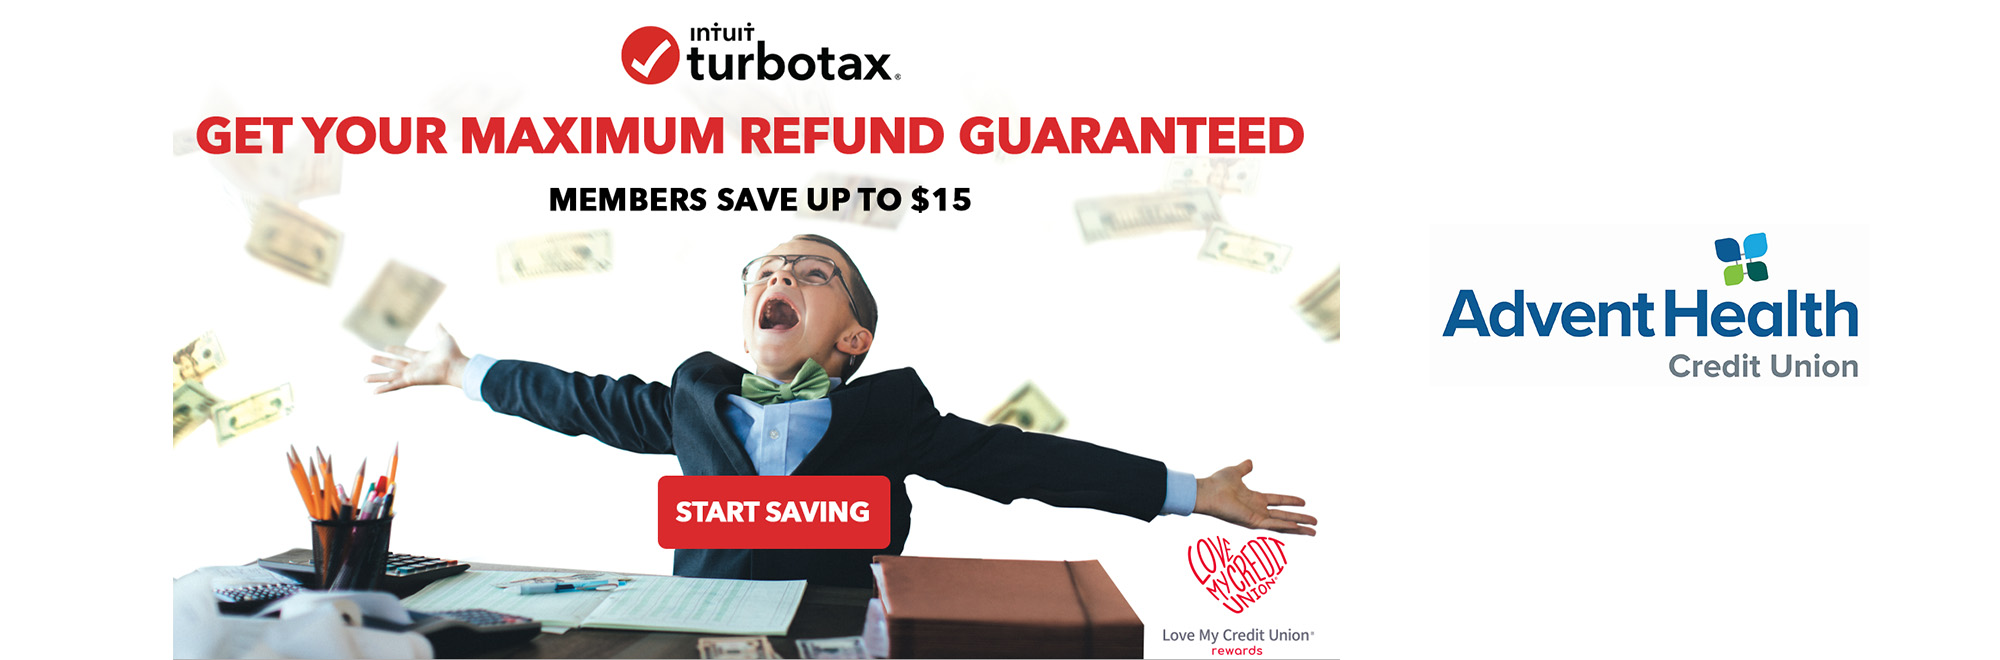 Members save up to $15 on Turbo Tax. Get your maximum refund.